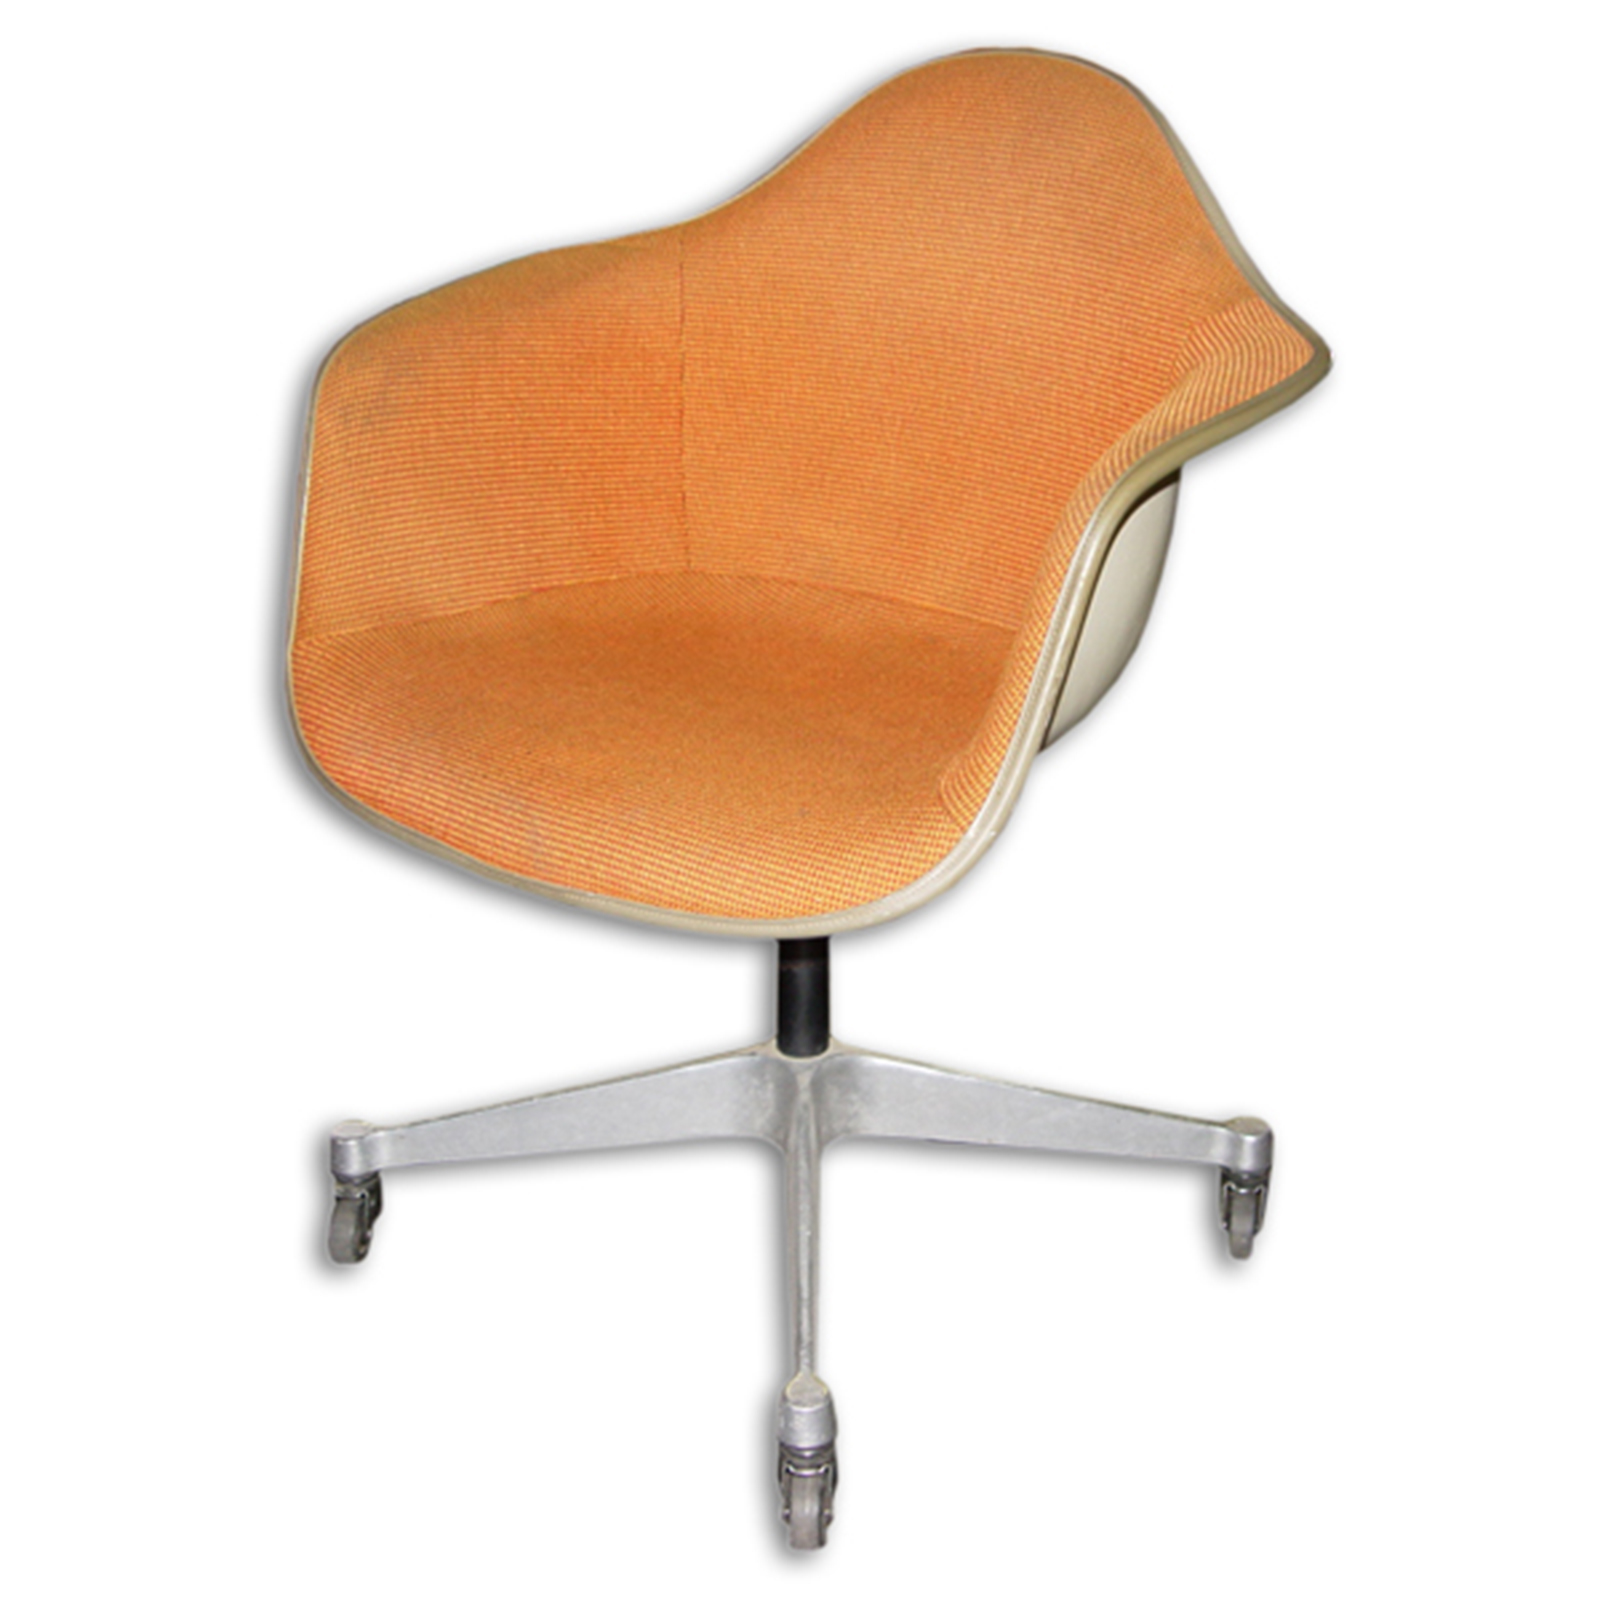 eames arm chair best to use after back surgery 2 vintage herman miller girard fiberglass ebay